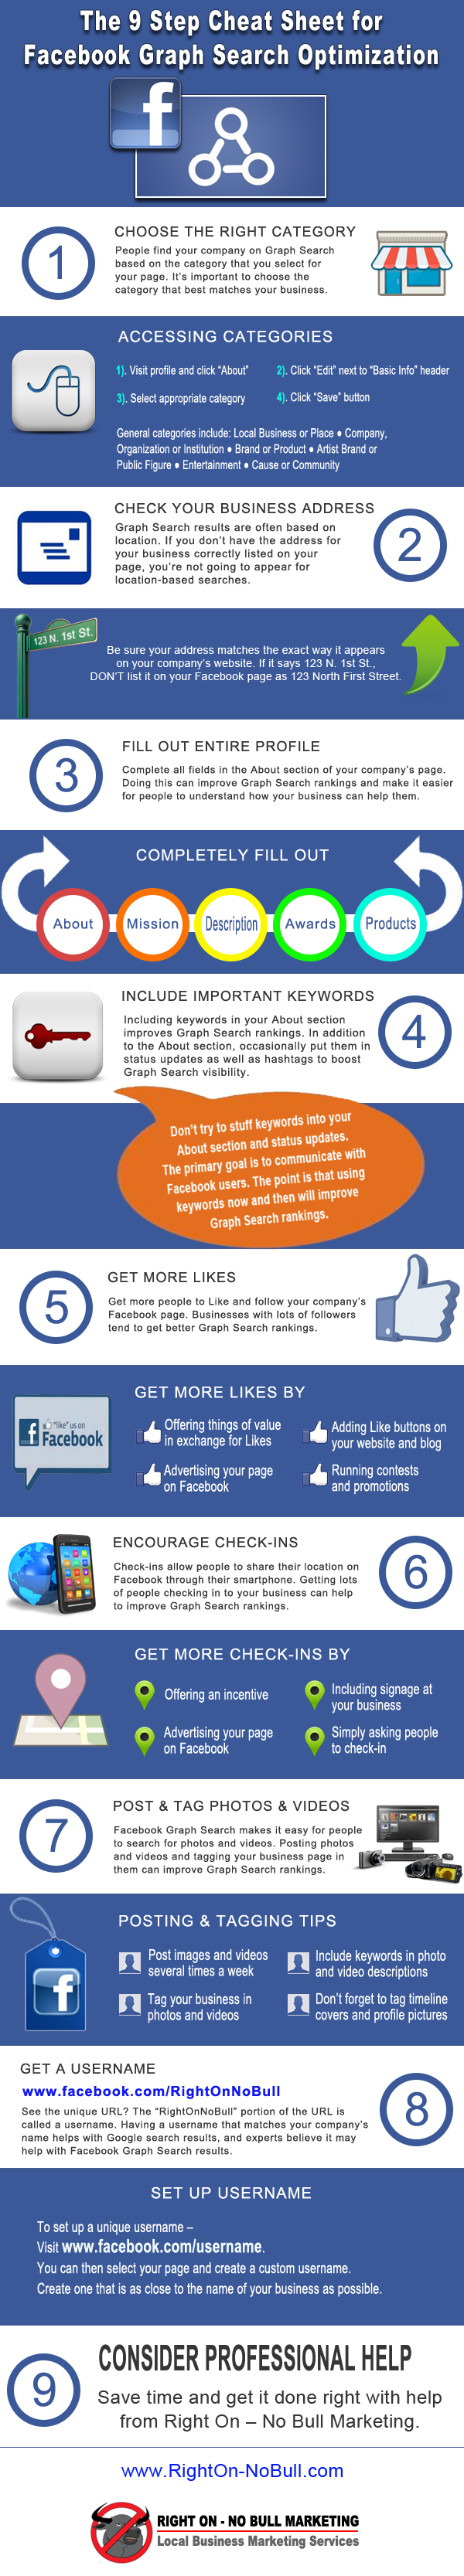 http://thumbnails.visually.netdna-cdn.com/the-9-step-cheat-sheet-for-facebook-graph-search-optimization_51ddc852f3fee.jpg